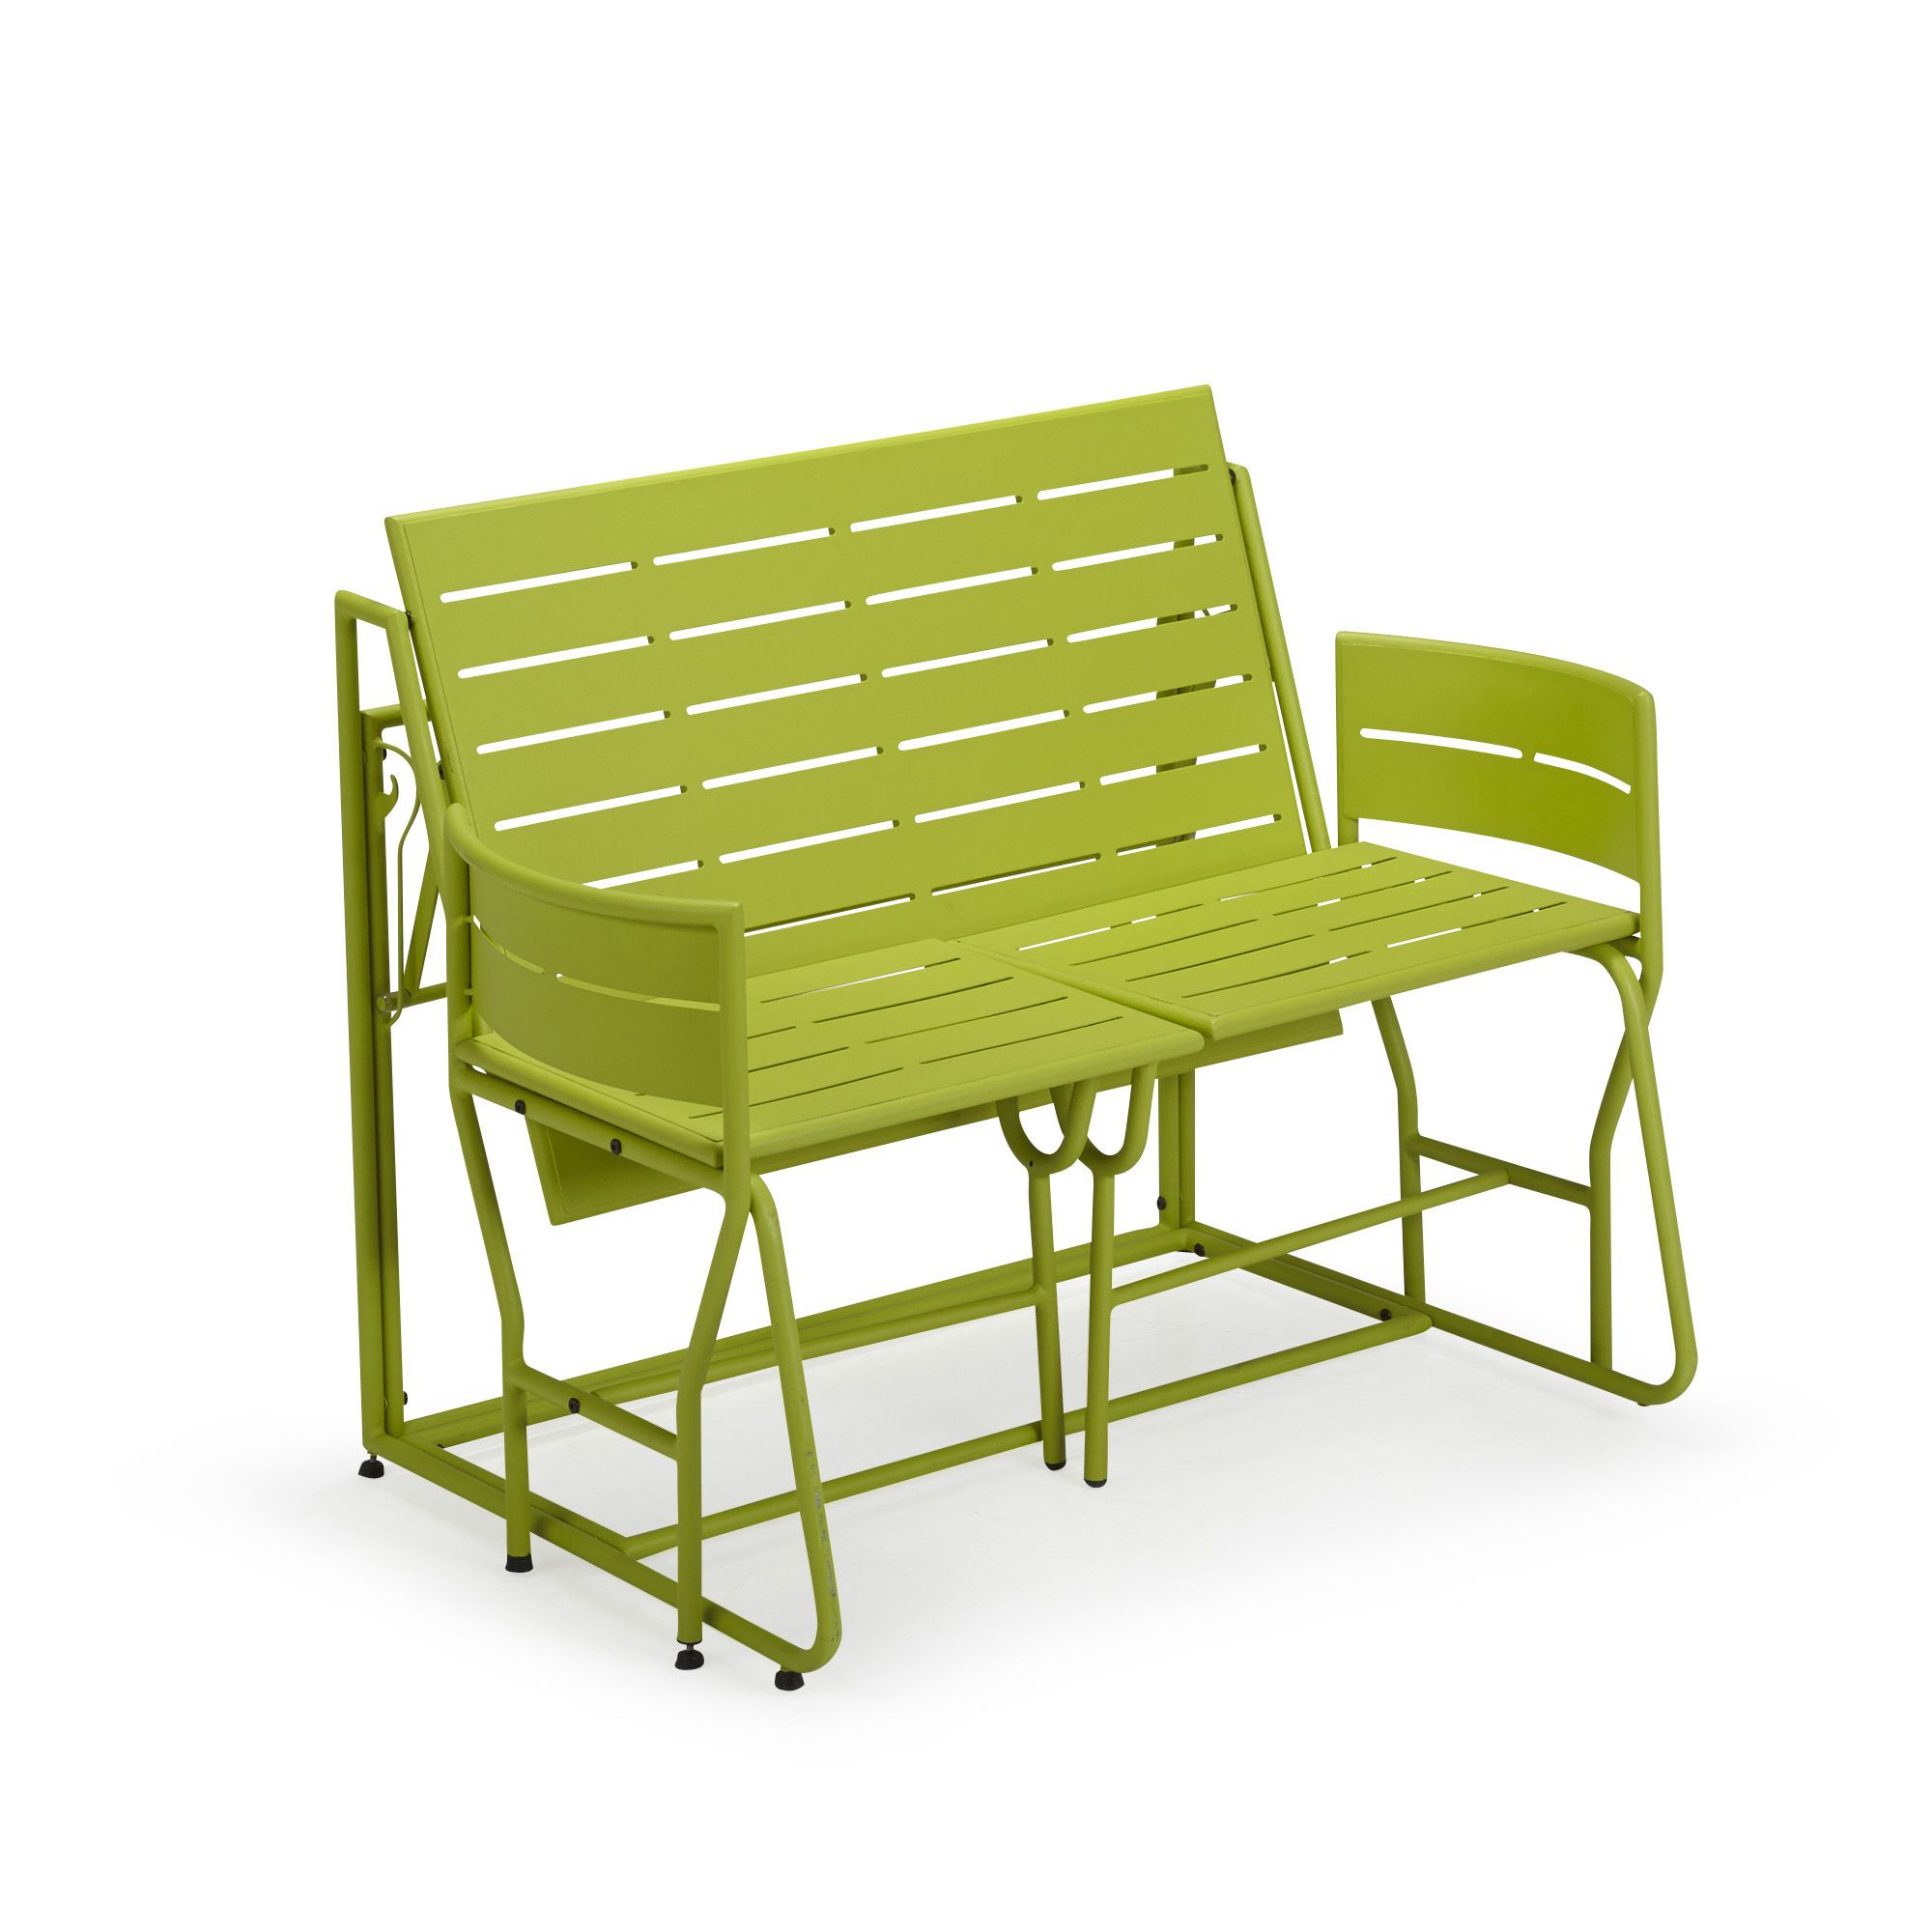 Picnic Le Salon De Jardinbalcon Transformable 2 En 1